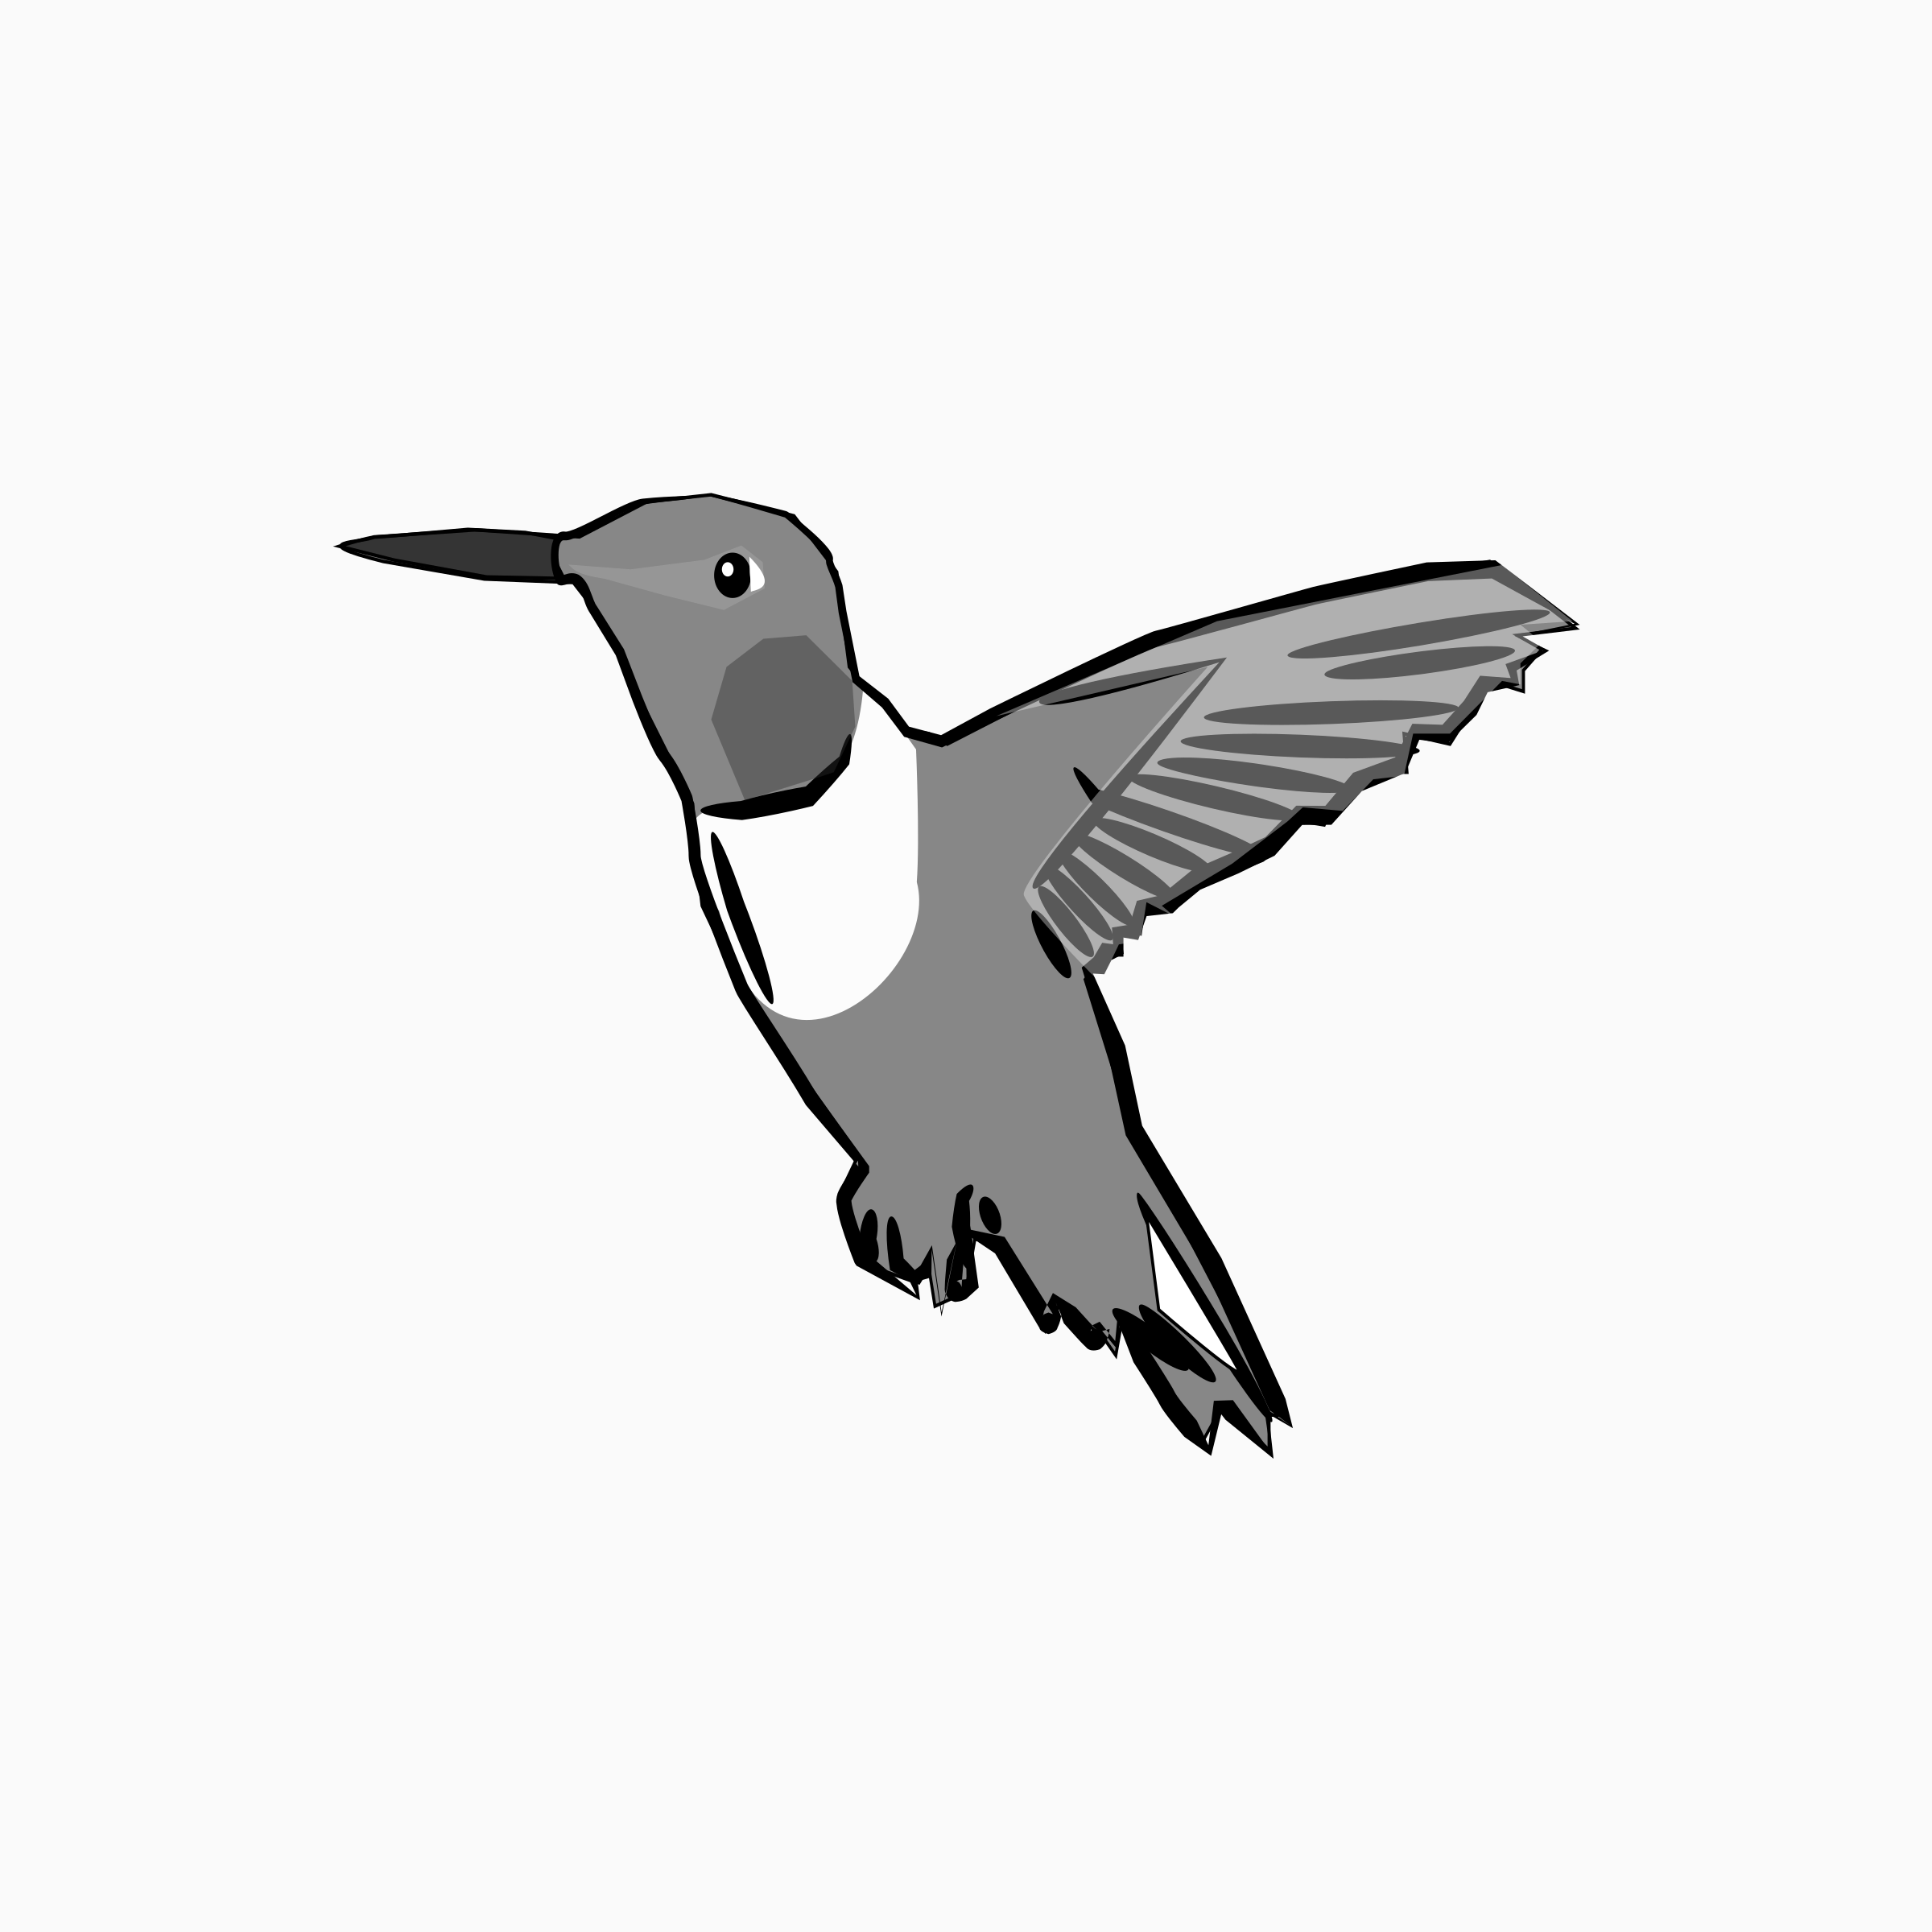 Page of clipartblack com. Hummingbird clipart abstract